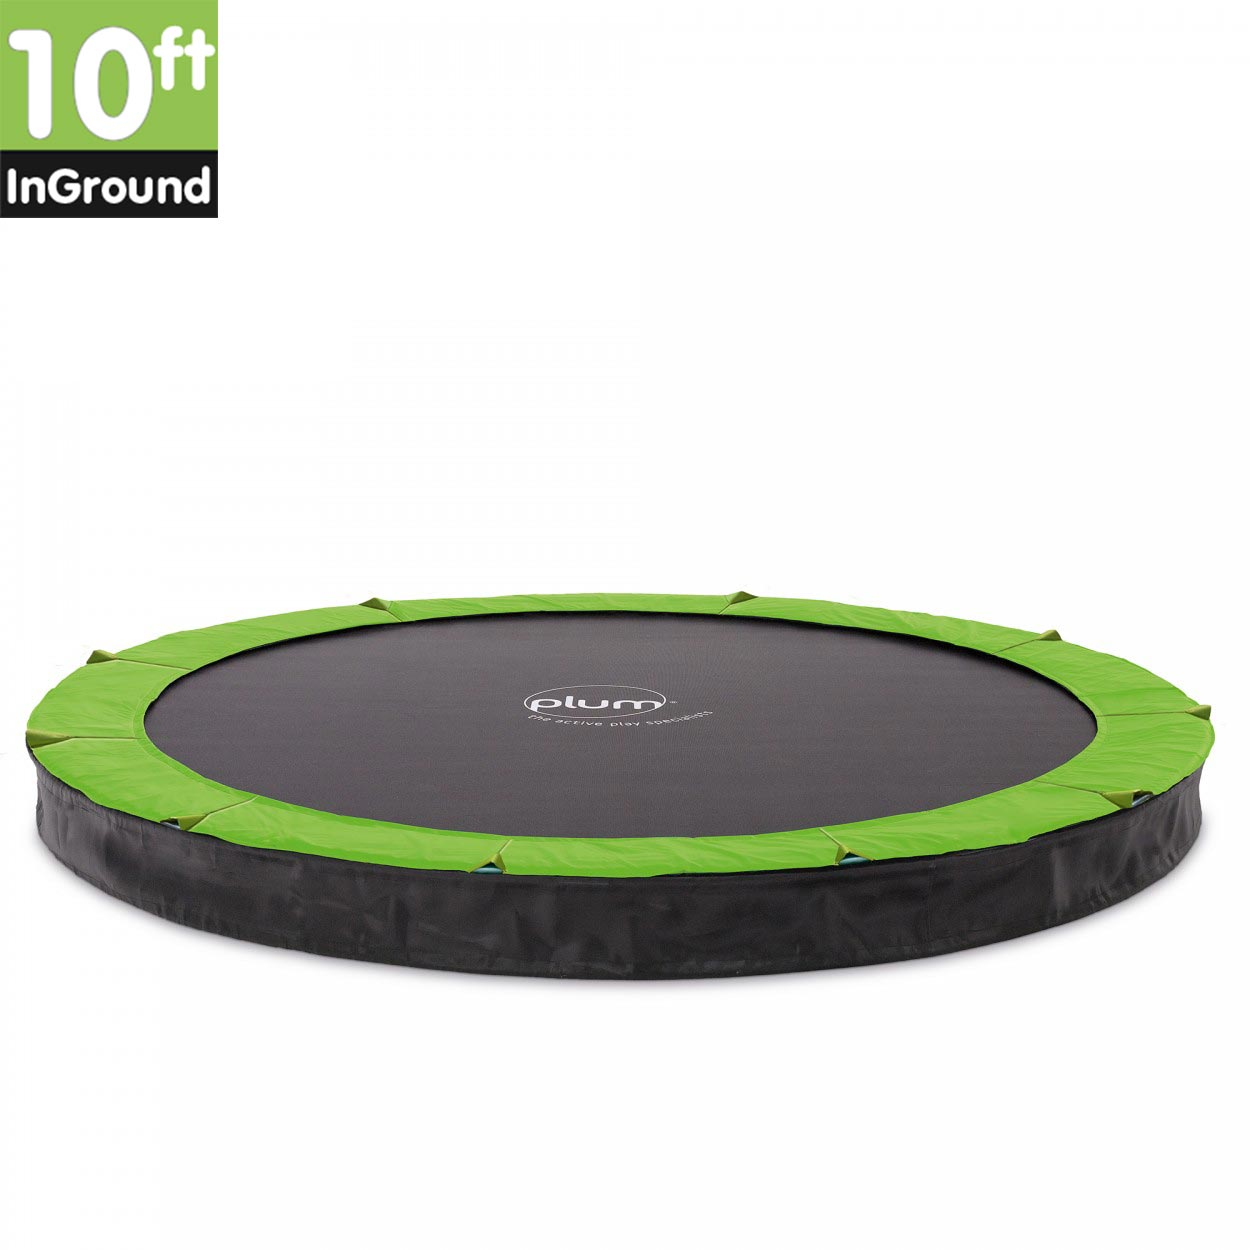 Plum 10ft In-Ground Trampoline